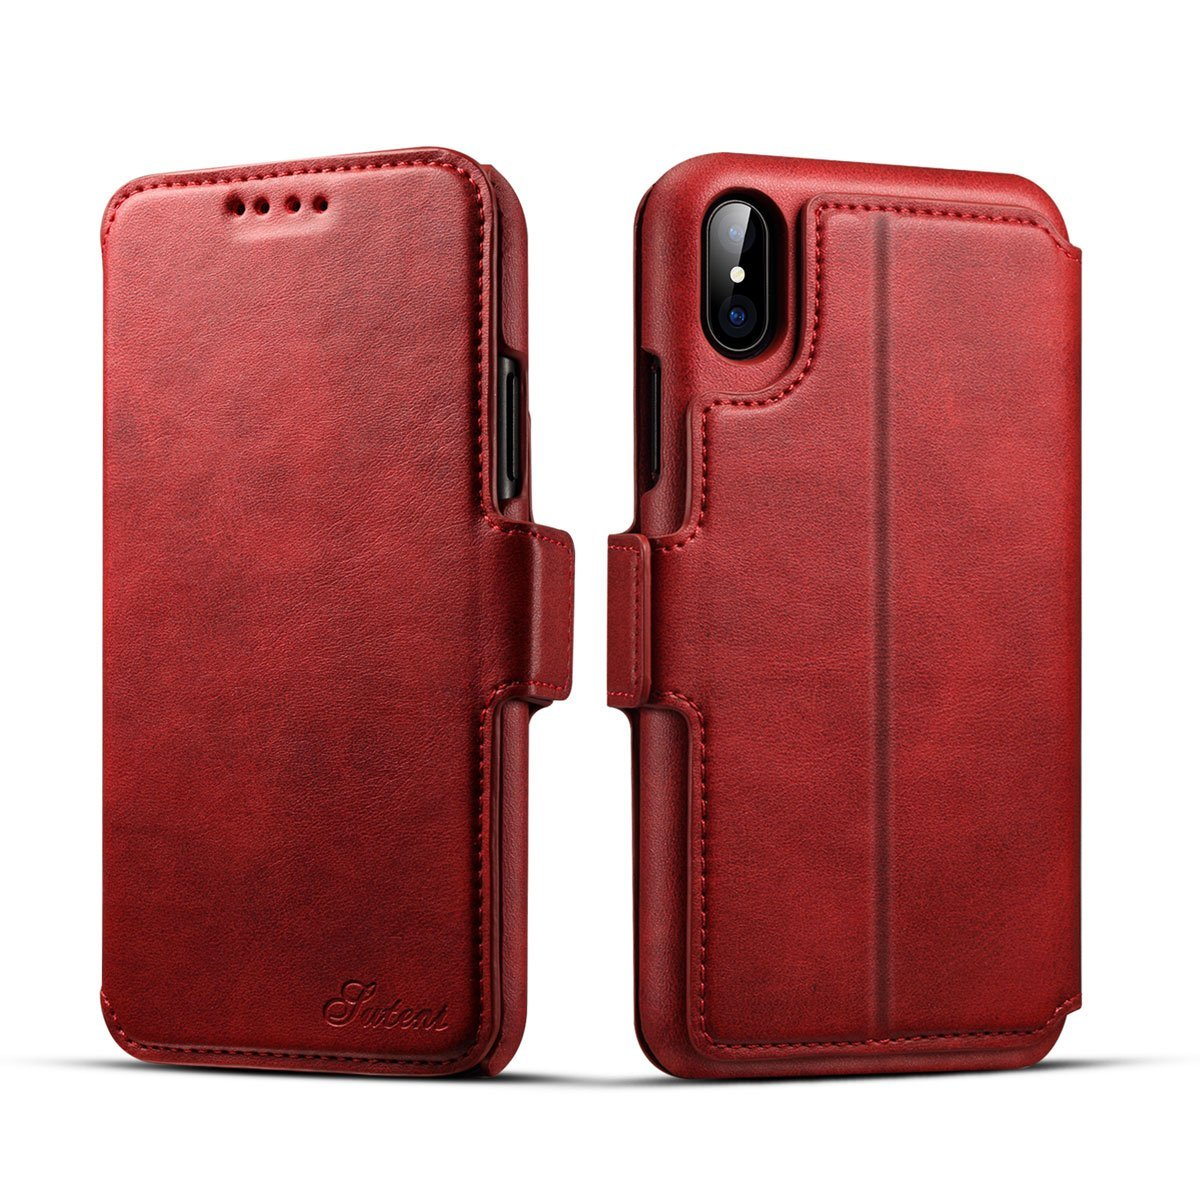 Scheam iPhone X Flip Cover, Case, Skins Card Slot [Stand Feature] Leather Wallet Case Vintage Book Style Magnetic Protective Cover Holder for iPhone X - Red by Scheam (Image #1)